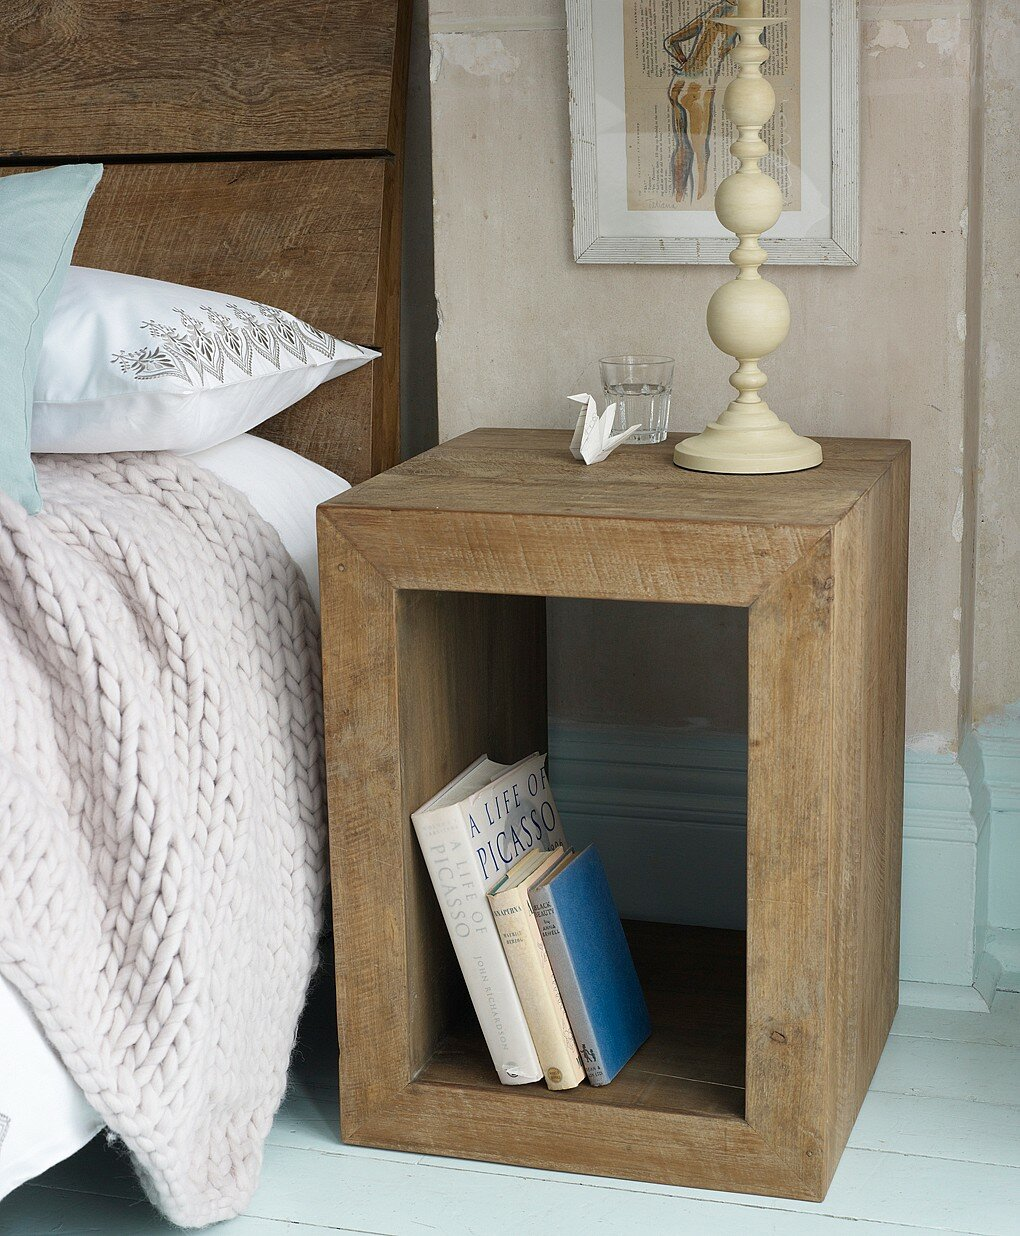 17 inspiring bedside table designs mostbeautifulthings for Latest side table designs